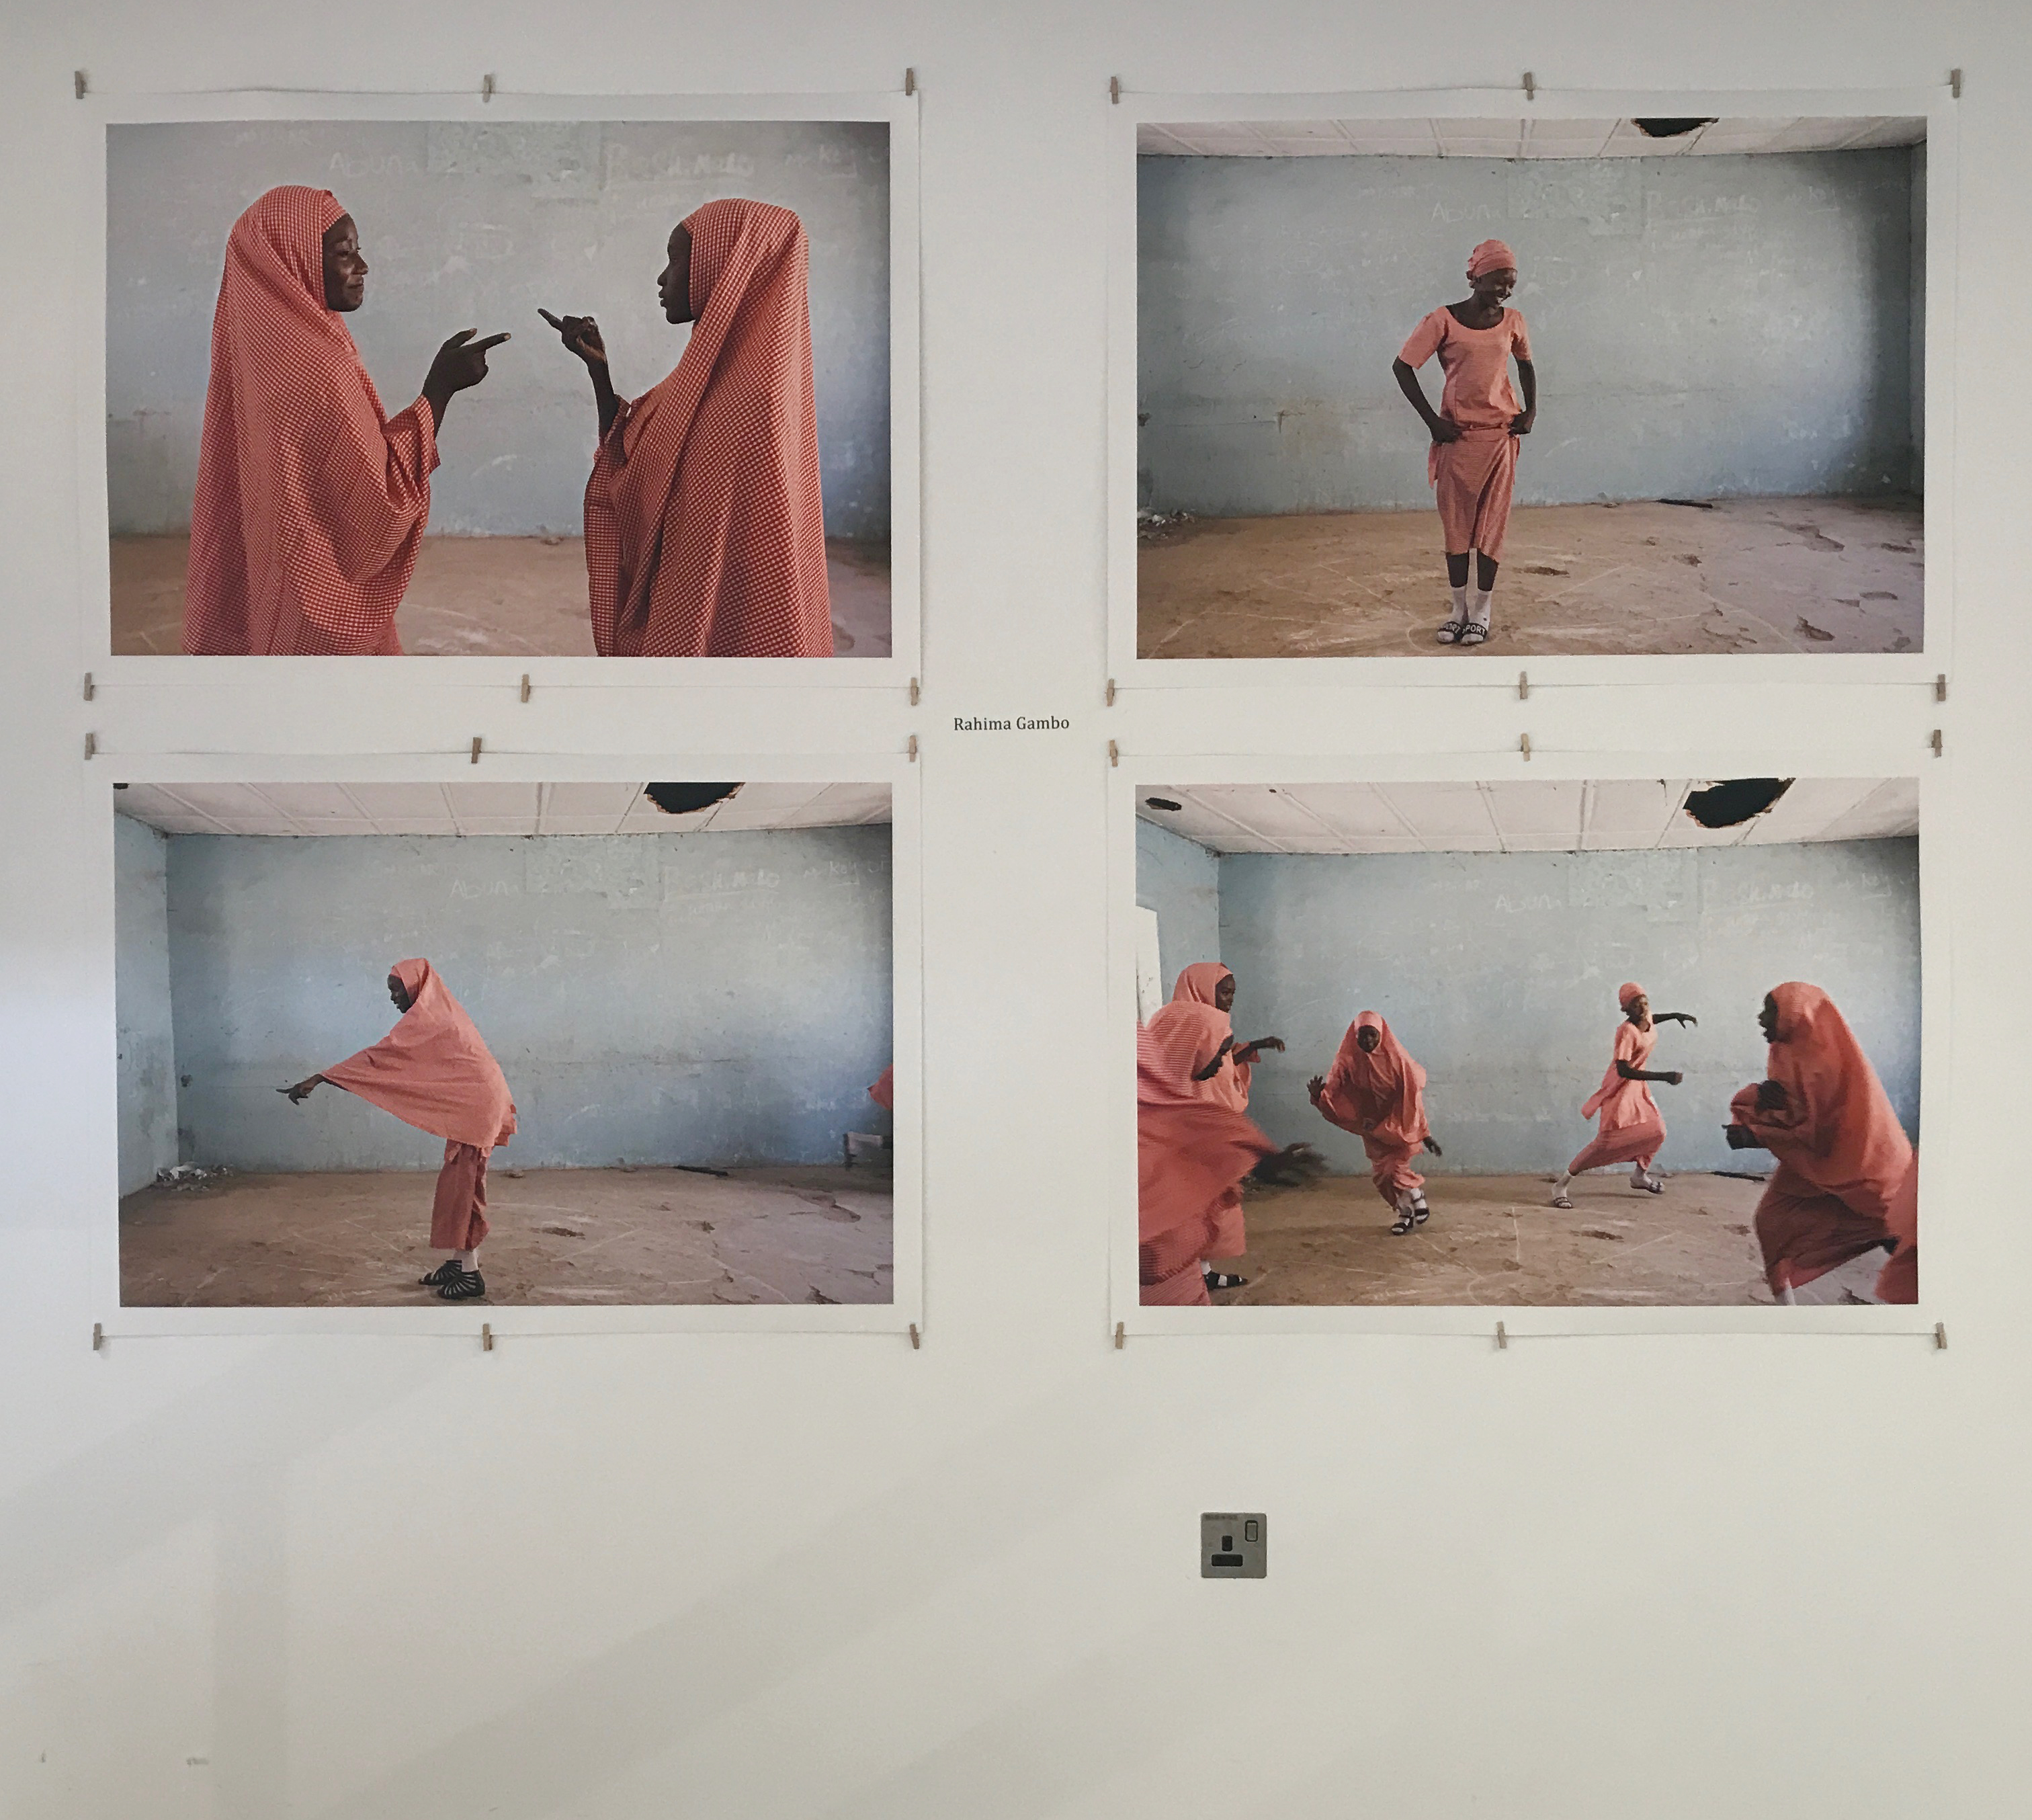 Africa MediaWorks Photography Prize